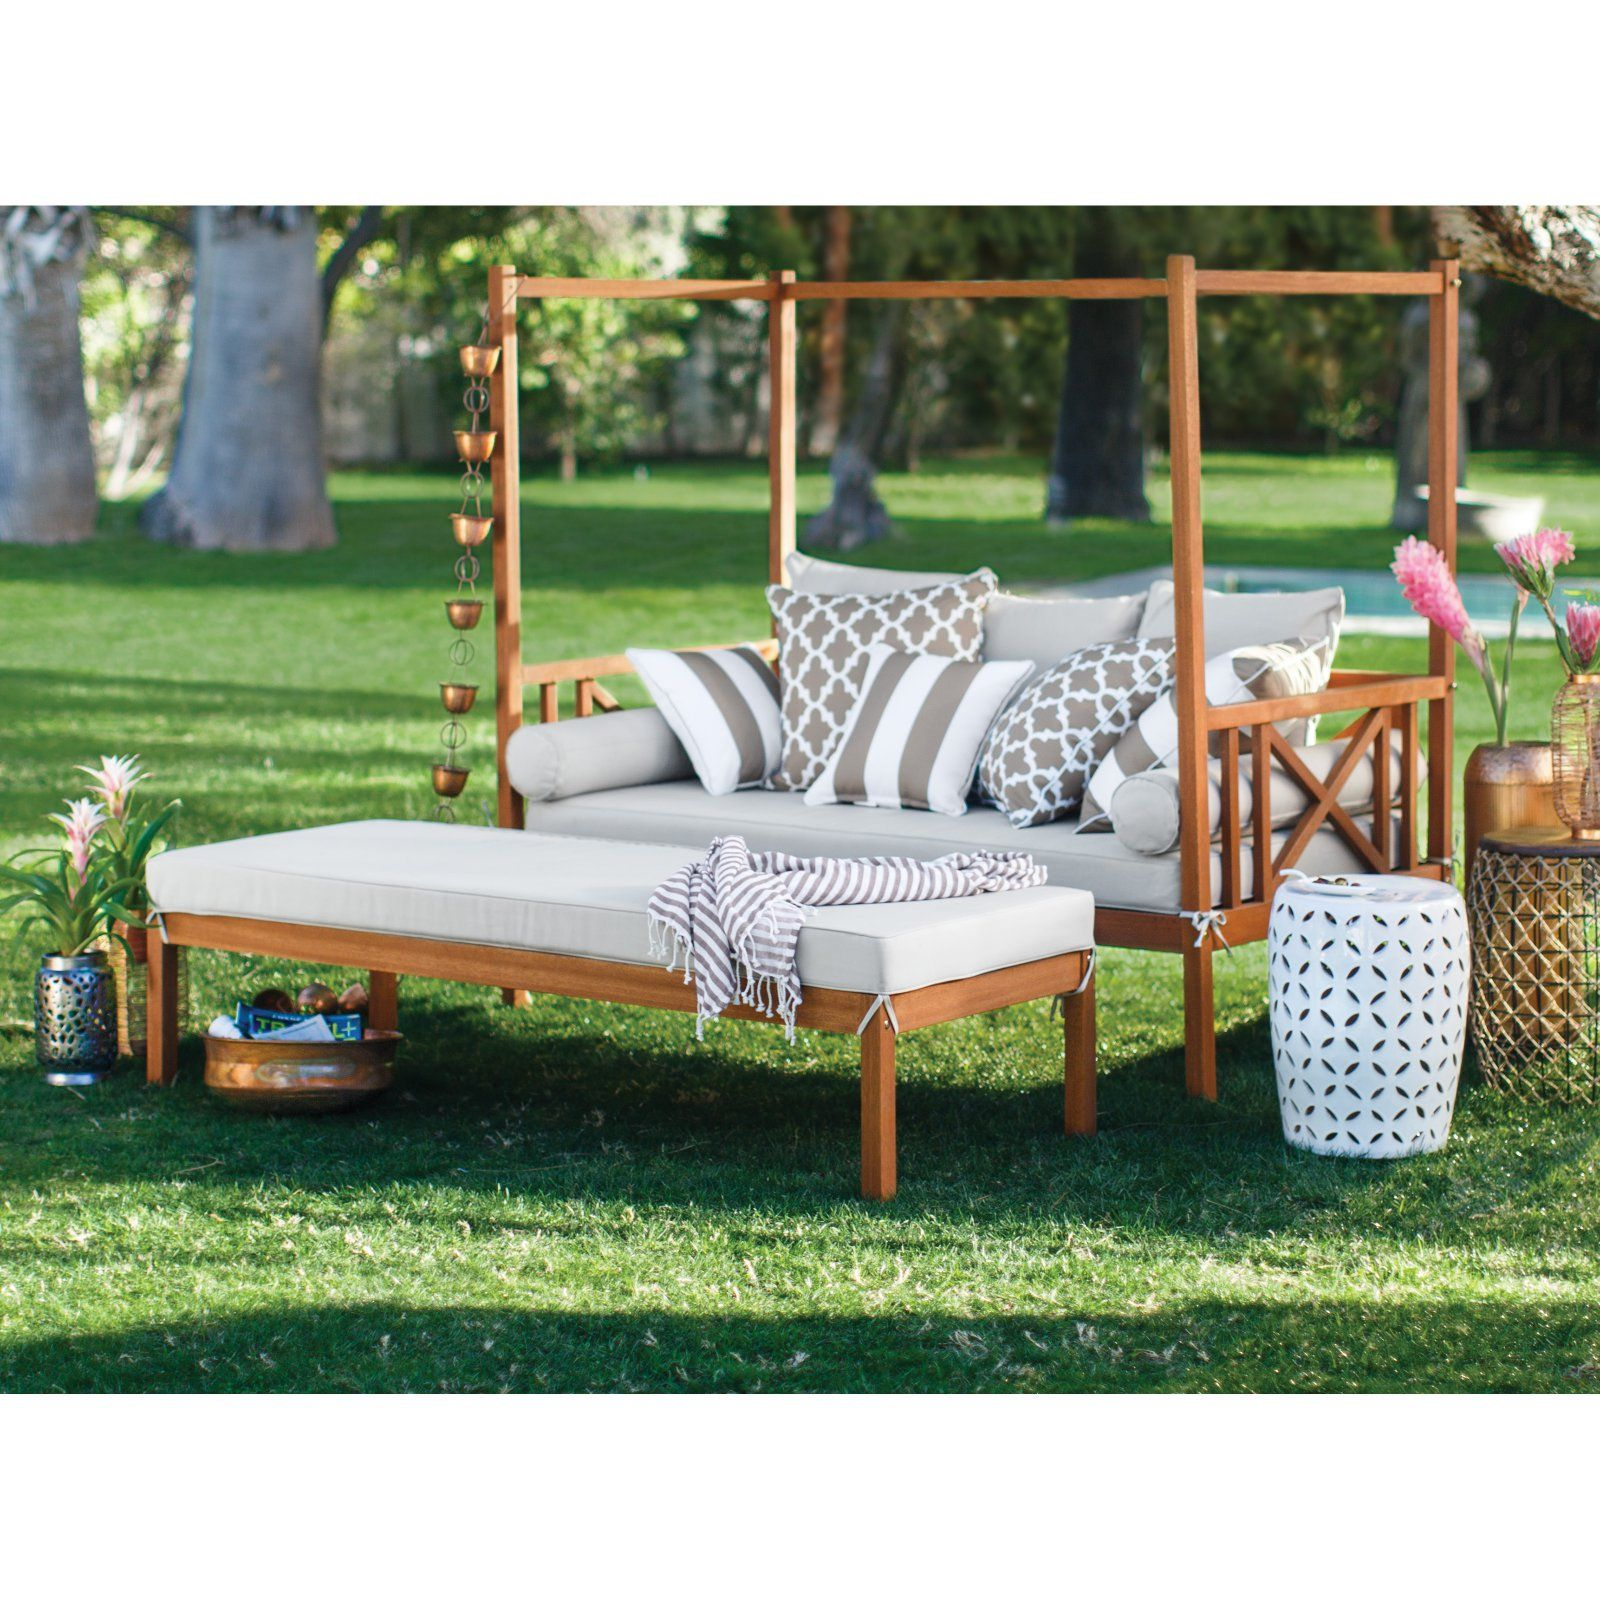 Pin on Kids outdoor furniture on Belham Living Brighton Outdoor Daybed id=48590